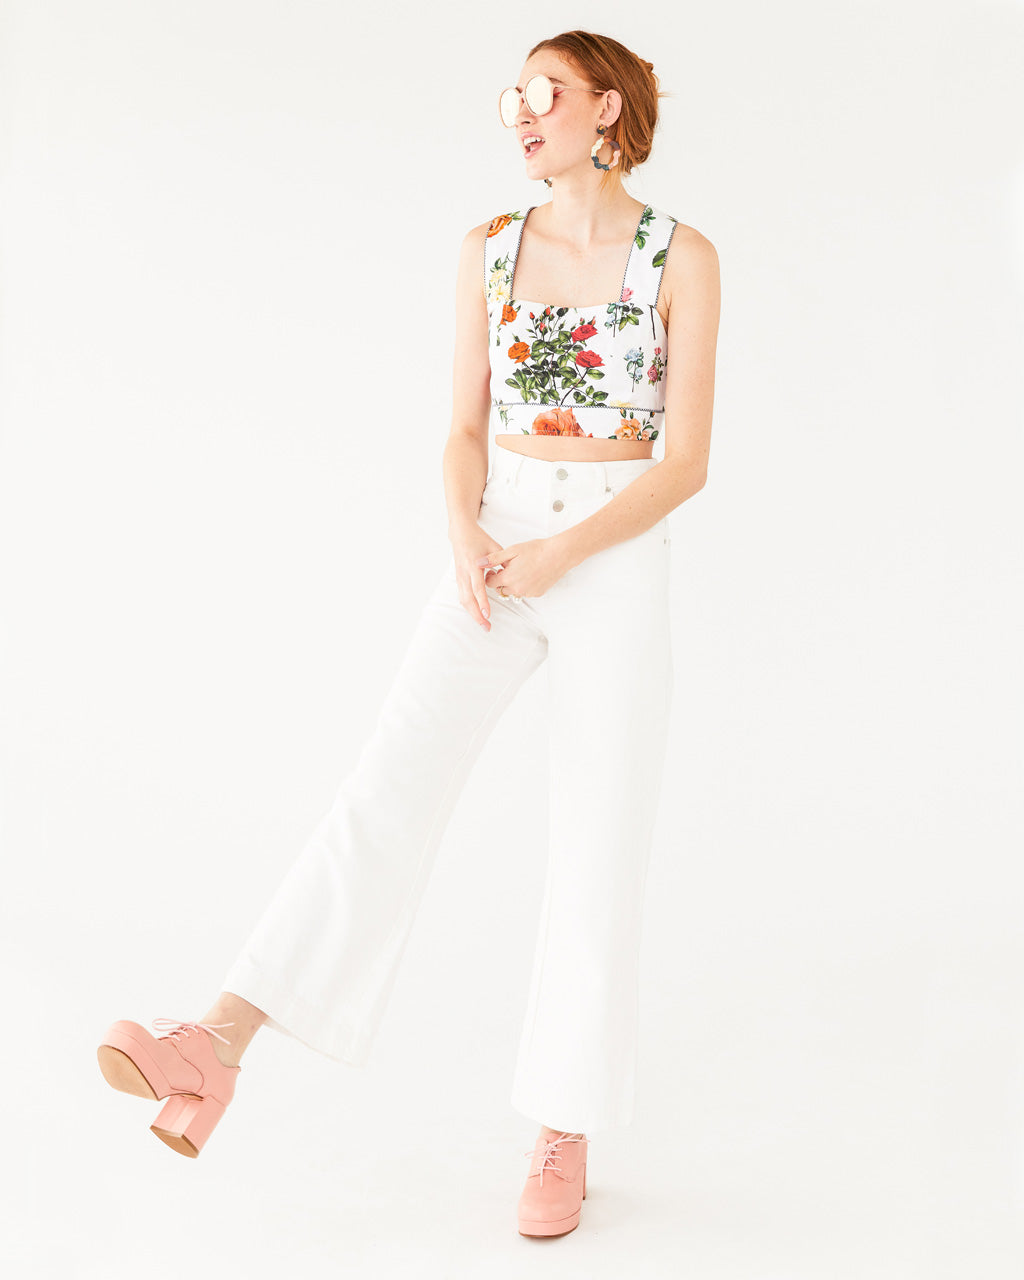 fitted white crop top with floral design paired with a straight leg ankle jean